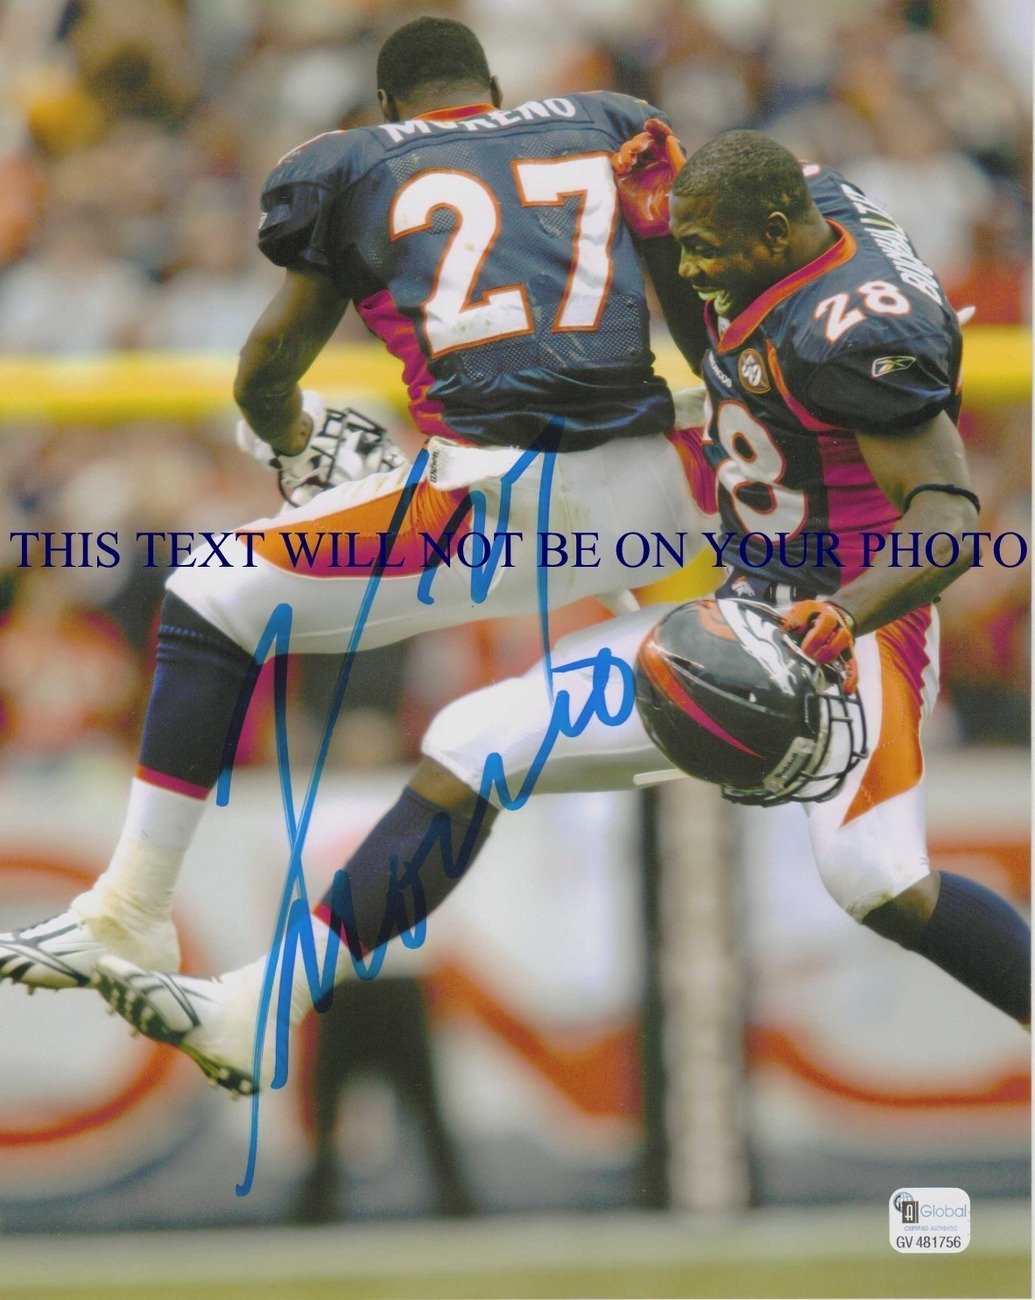 KNOWSHON MORENO SIGNED AUTOGRAPH AUTOGRAPHED 8x10 RP PHOTO DENVER BRONCOS UGA